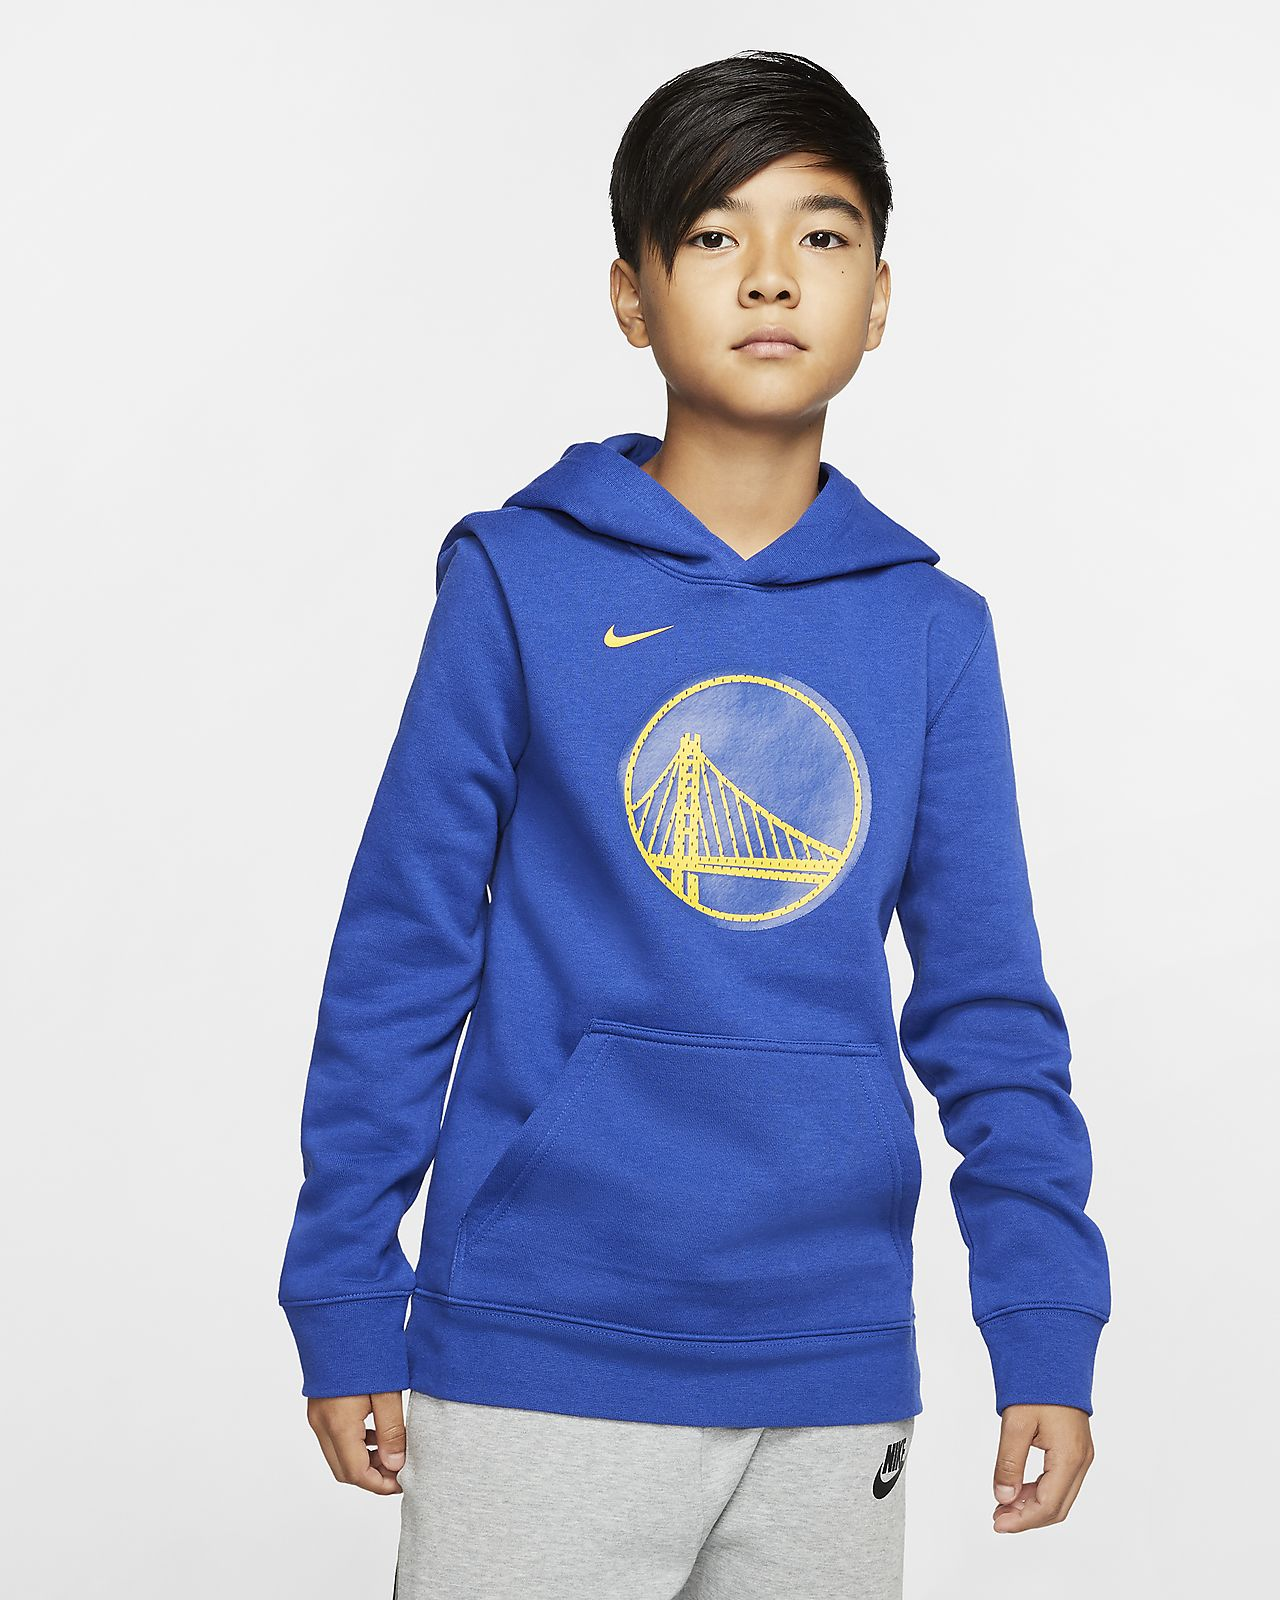 Sweat à capuche Nike NBA Golden State Warriors Logo pour Enfant plus âgé